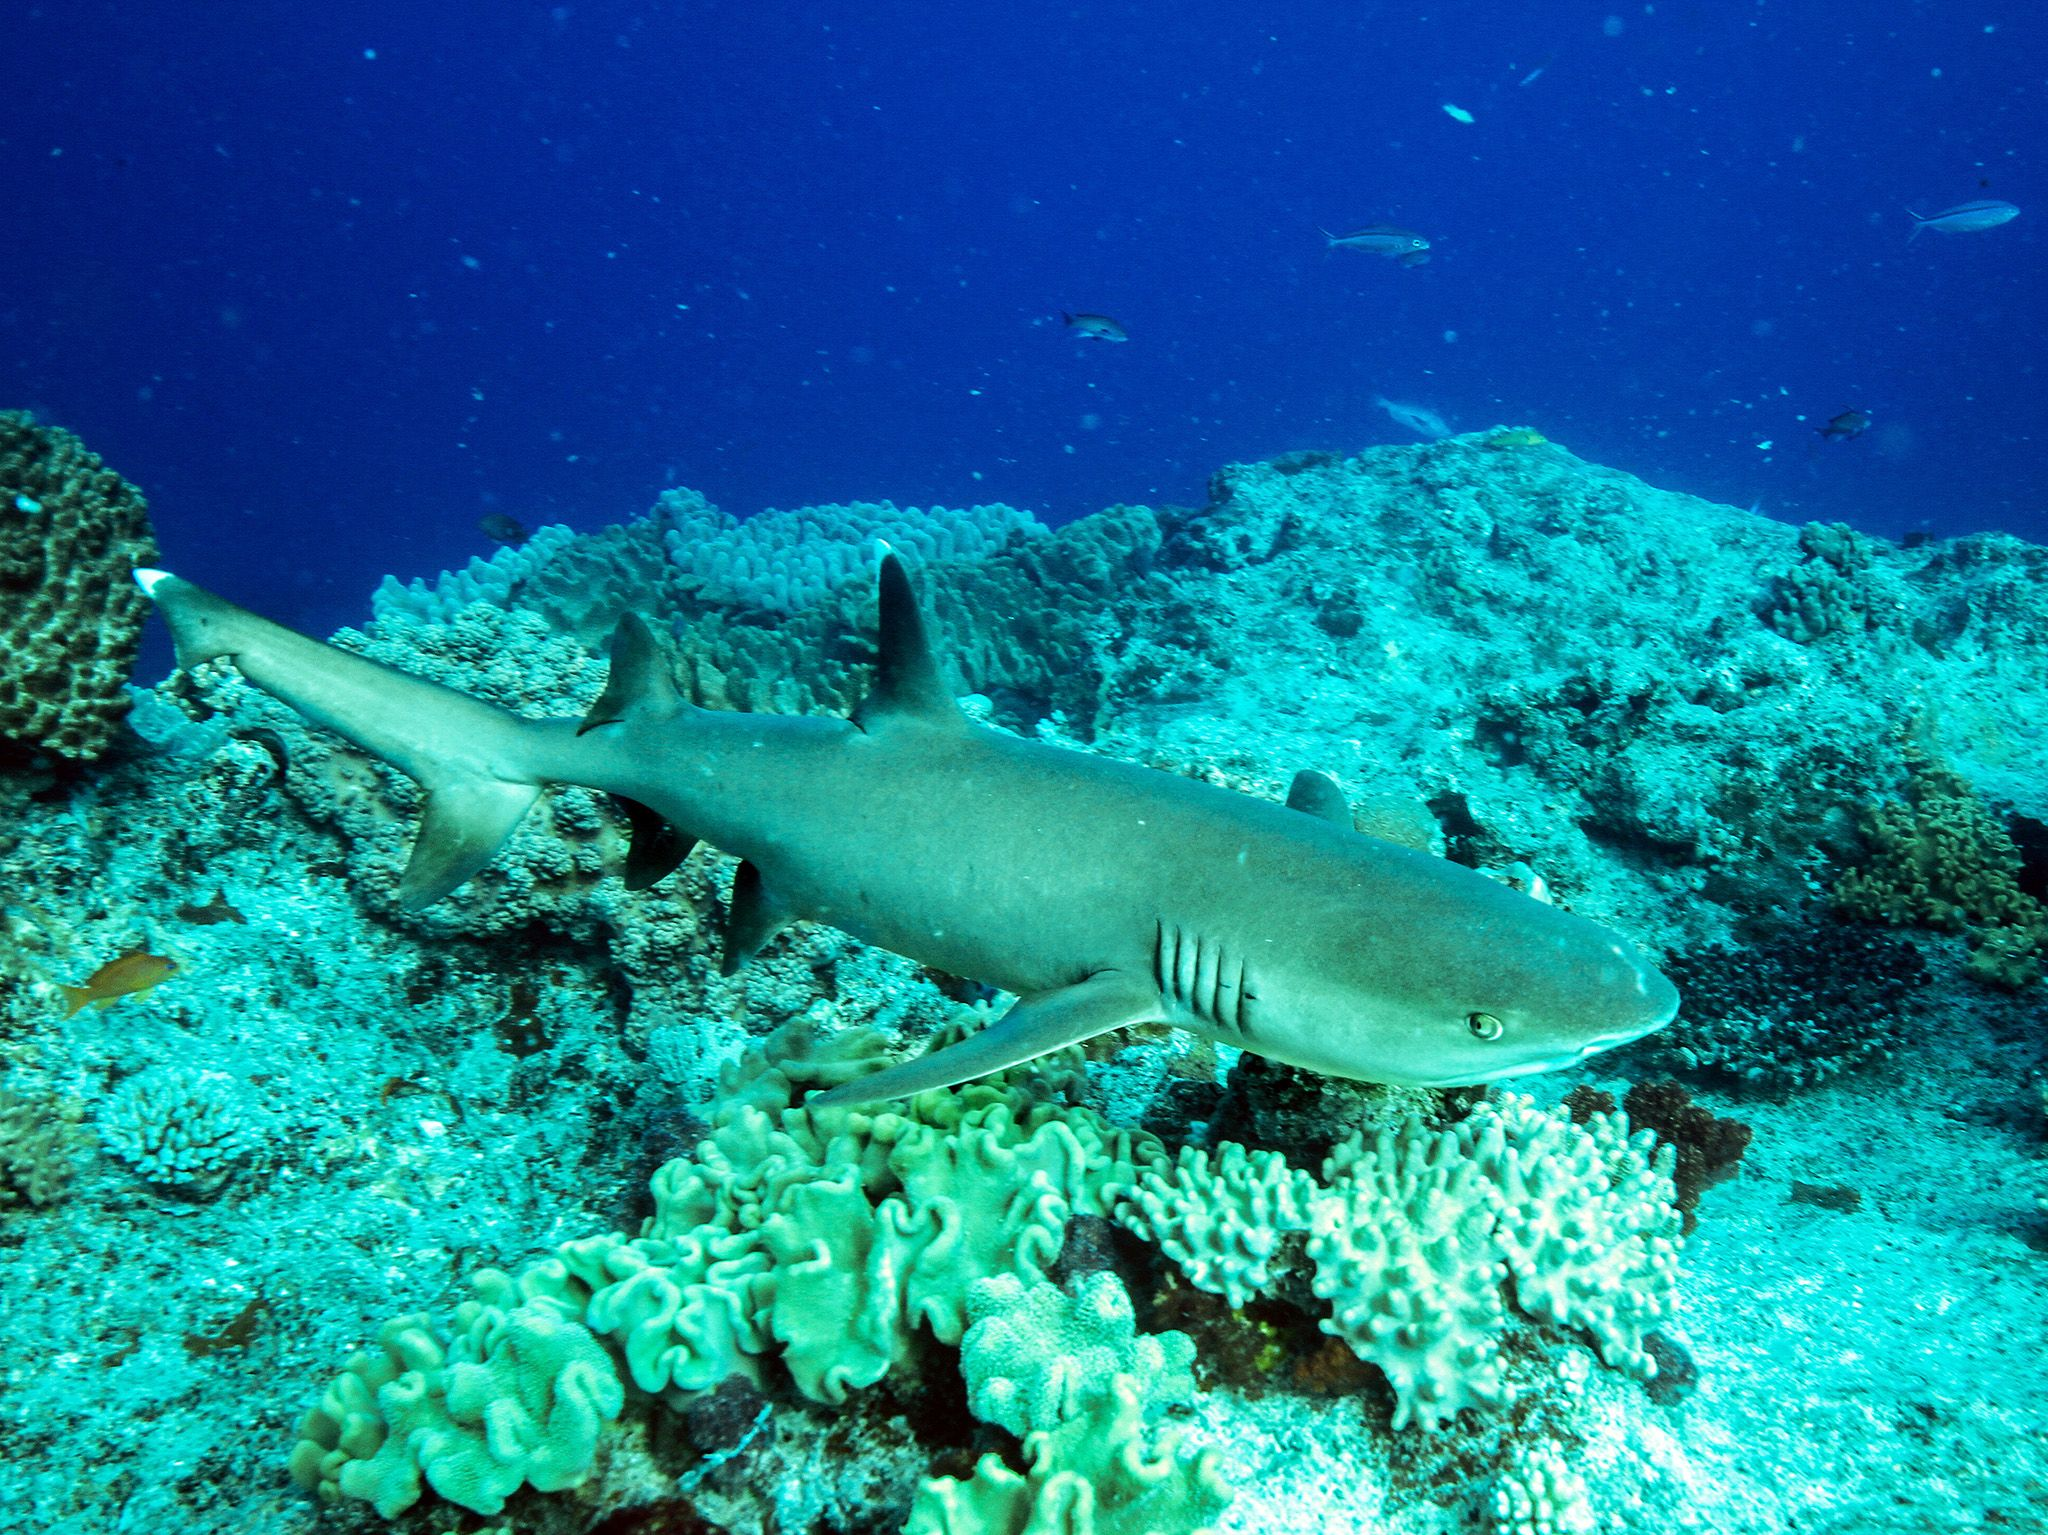 A Whitetip Reef Shark swims among the coral on New Caledonia's barrier reef, the second largest... [Photo of the day - ژولیه 2019]